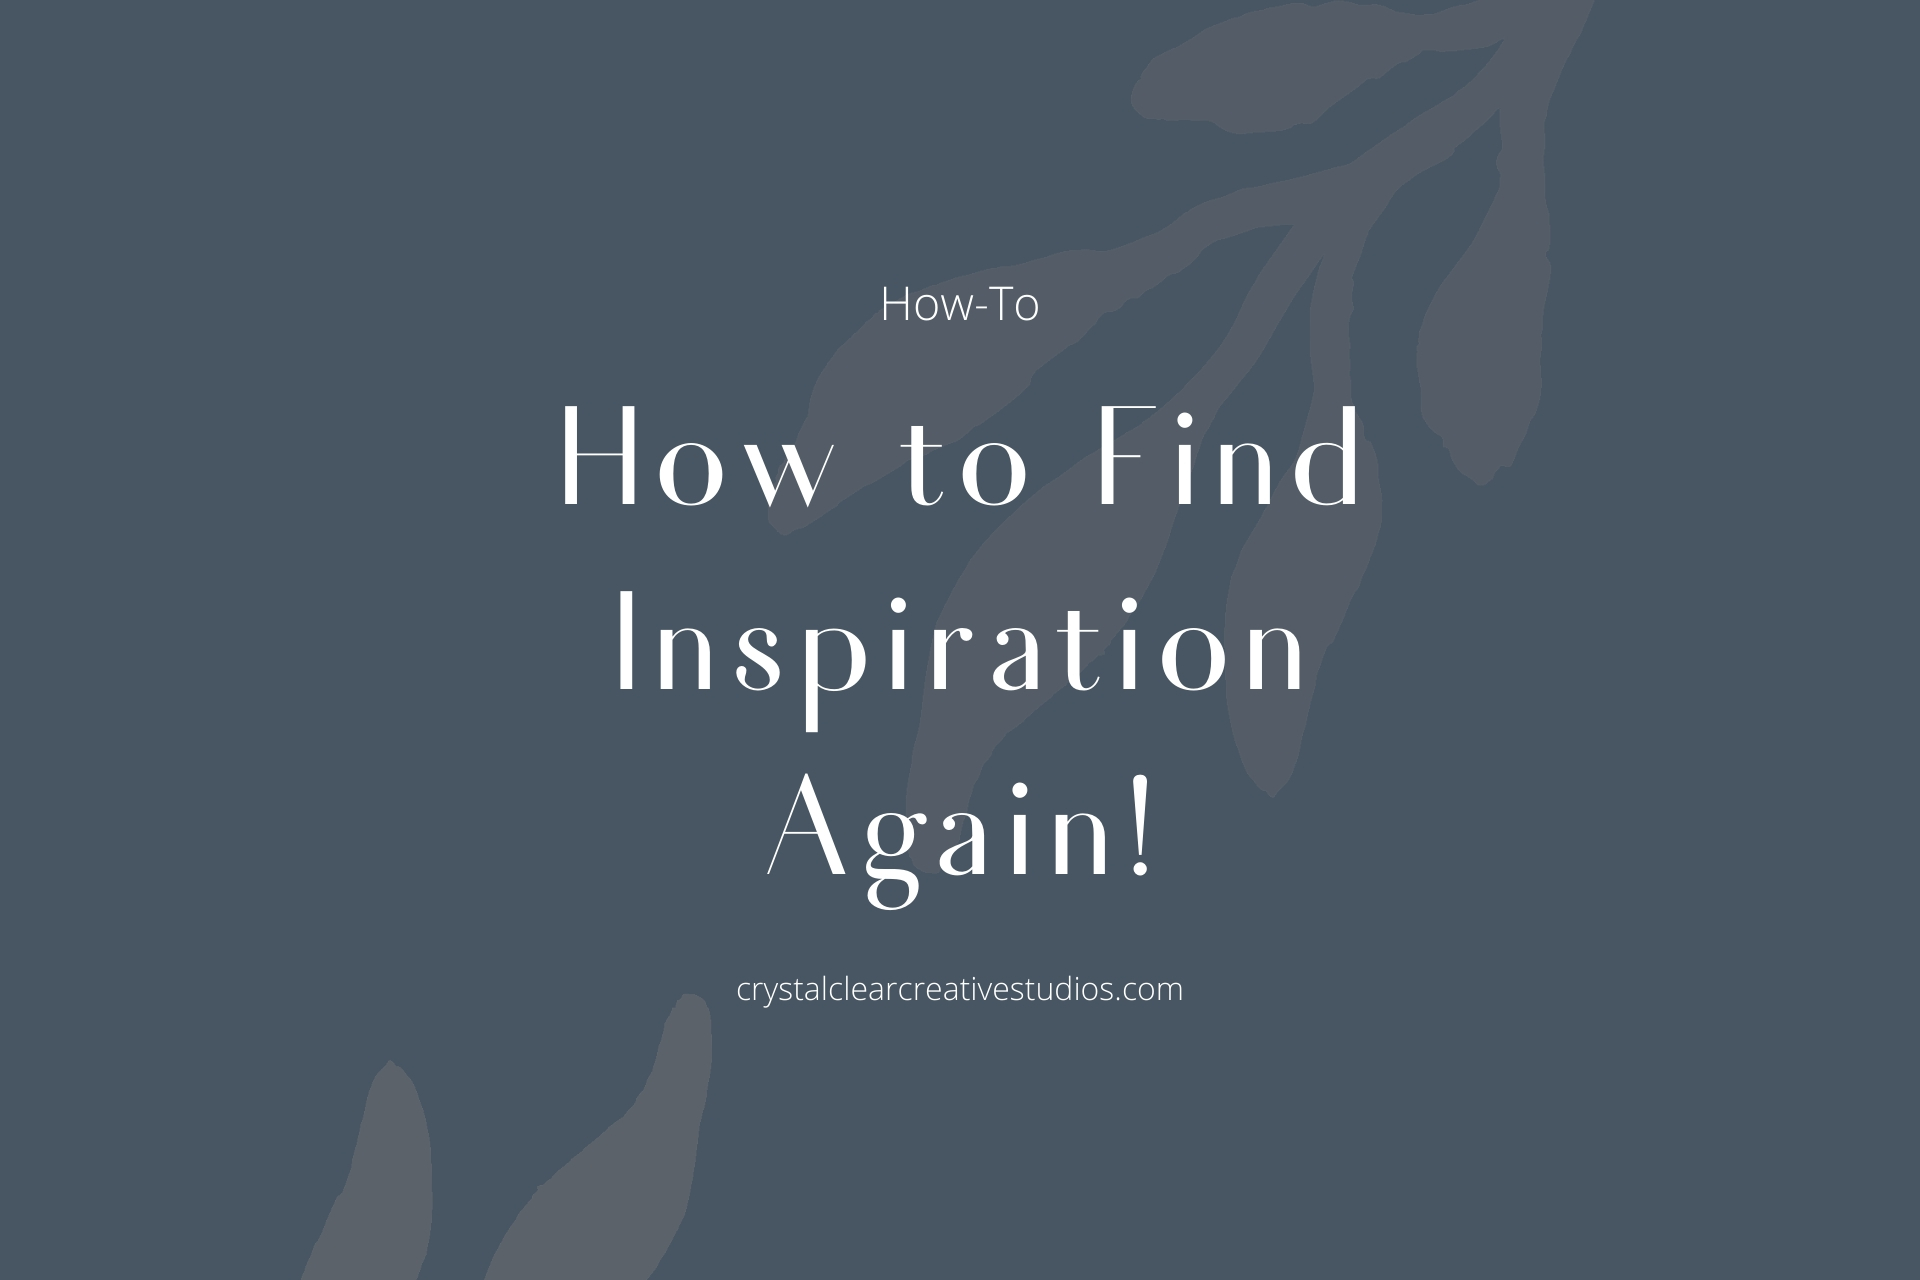 How to Find Inspiration Again!